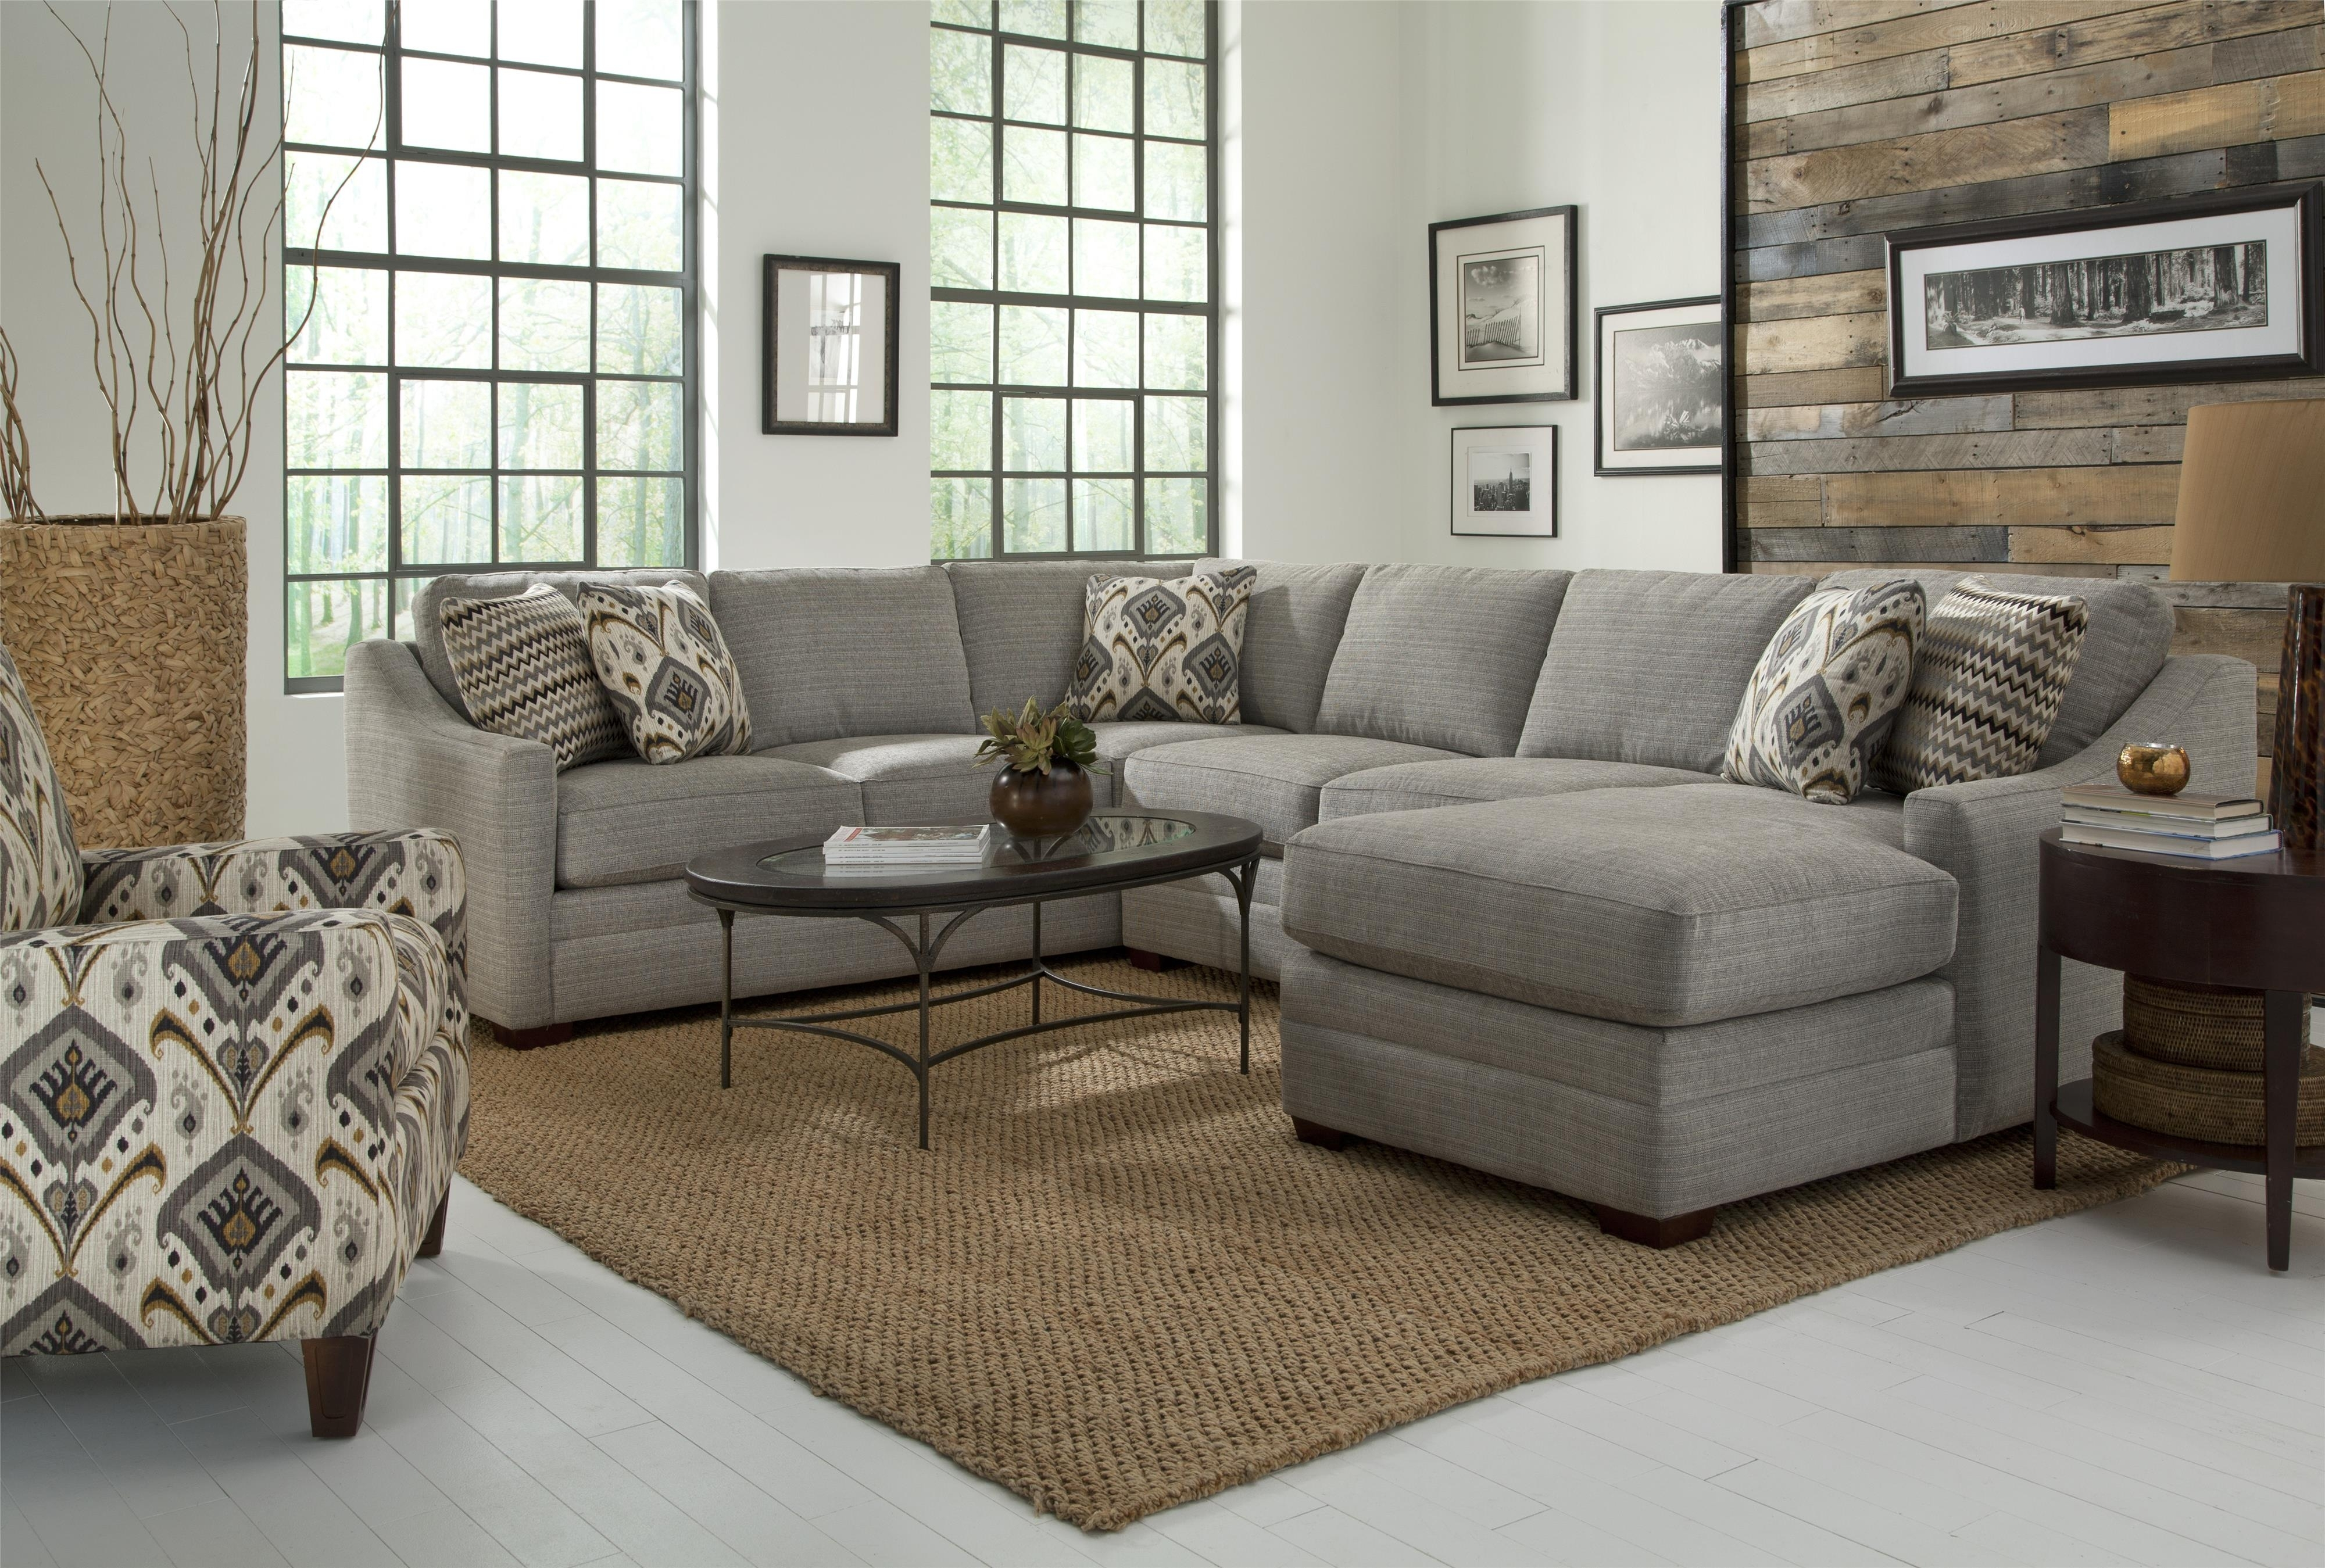 Craftmaster F9 Custom Collection Customizable Four Piece Sectional Within Avery 2 Piece Sectionals With Raf Armless Chaise (Image 11 of 25)